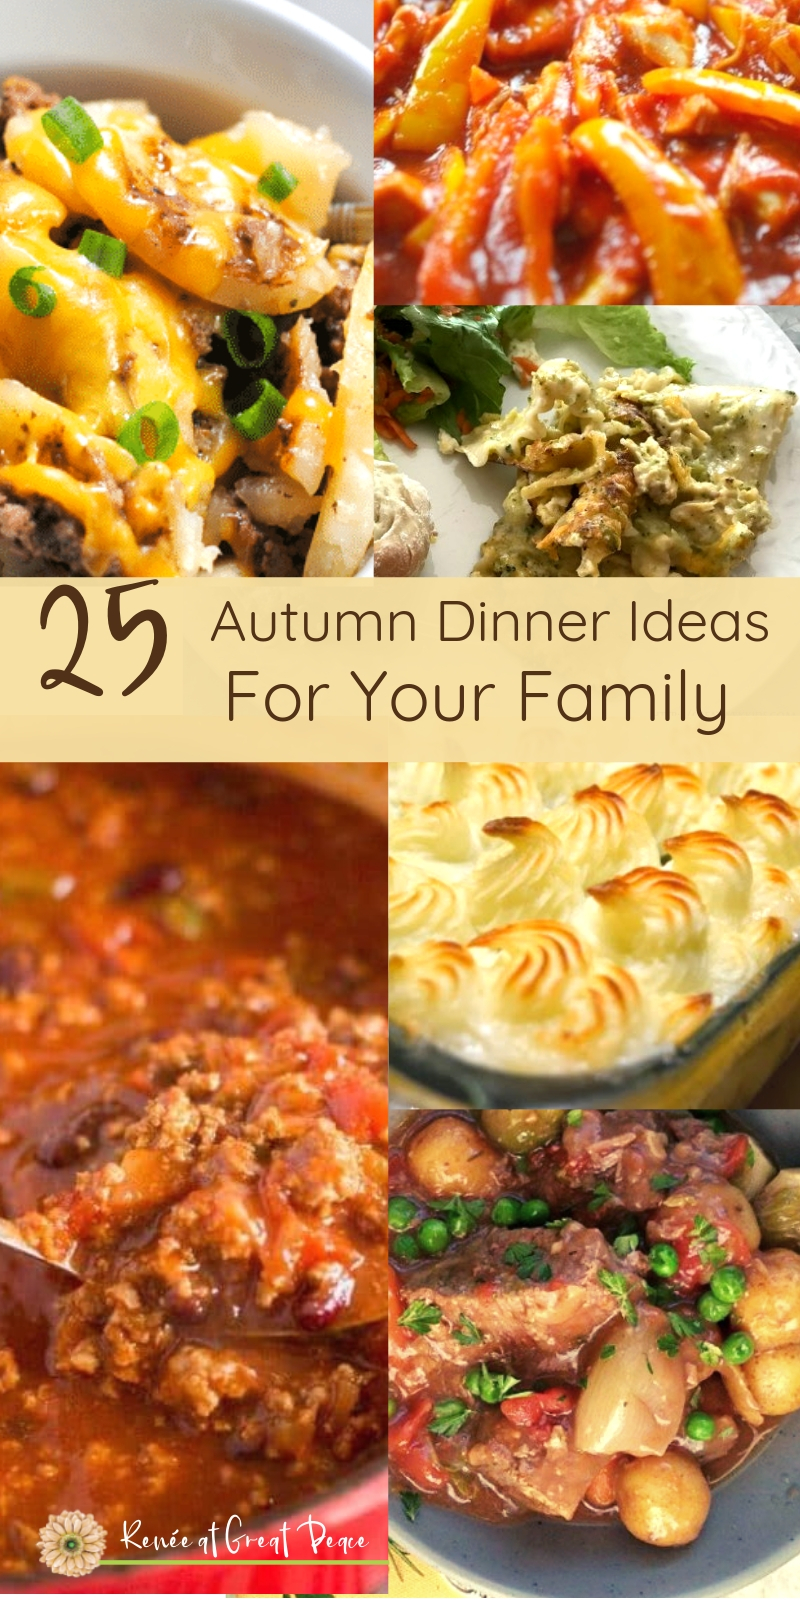 25 Autumn Dinner Ideas for your Family | Renée at Great Peace #mealplanning #autumndinnerideas #dinner